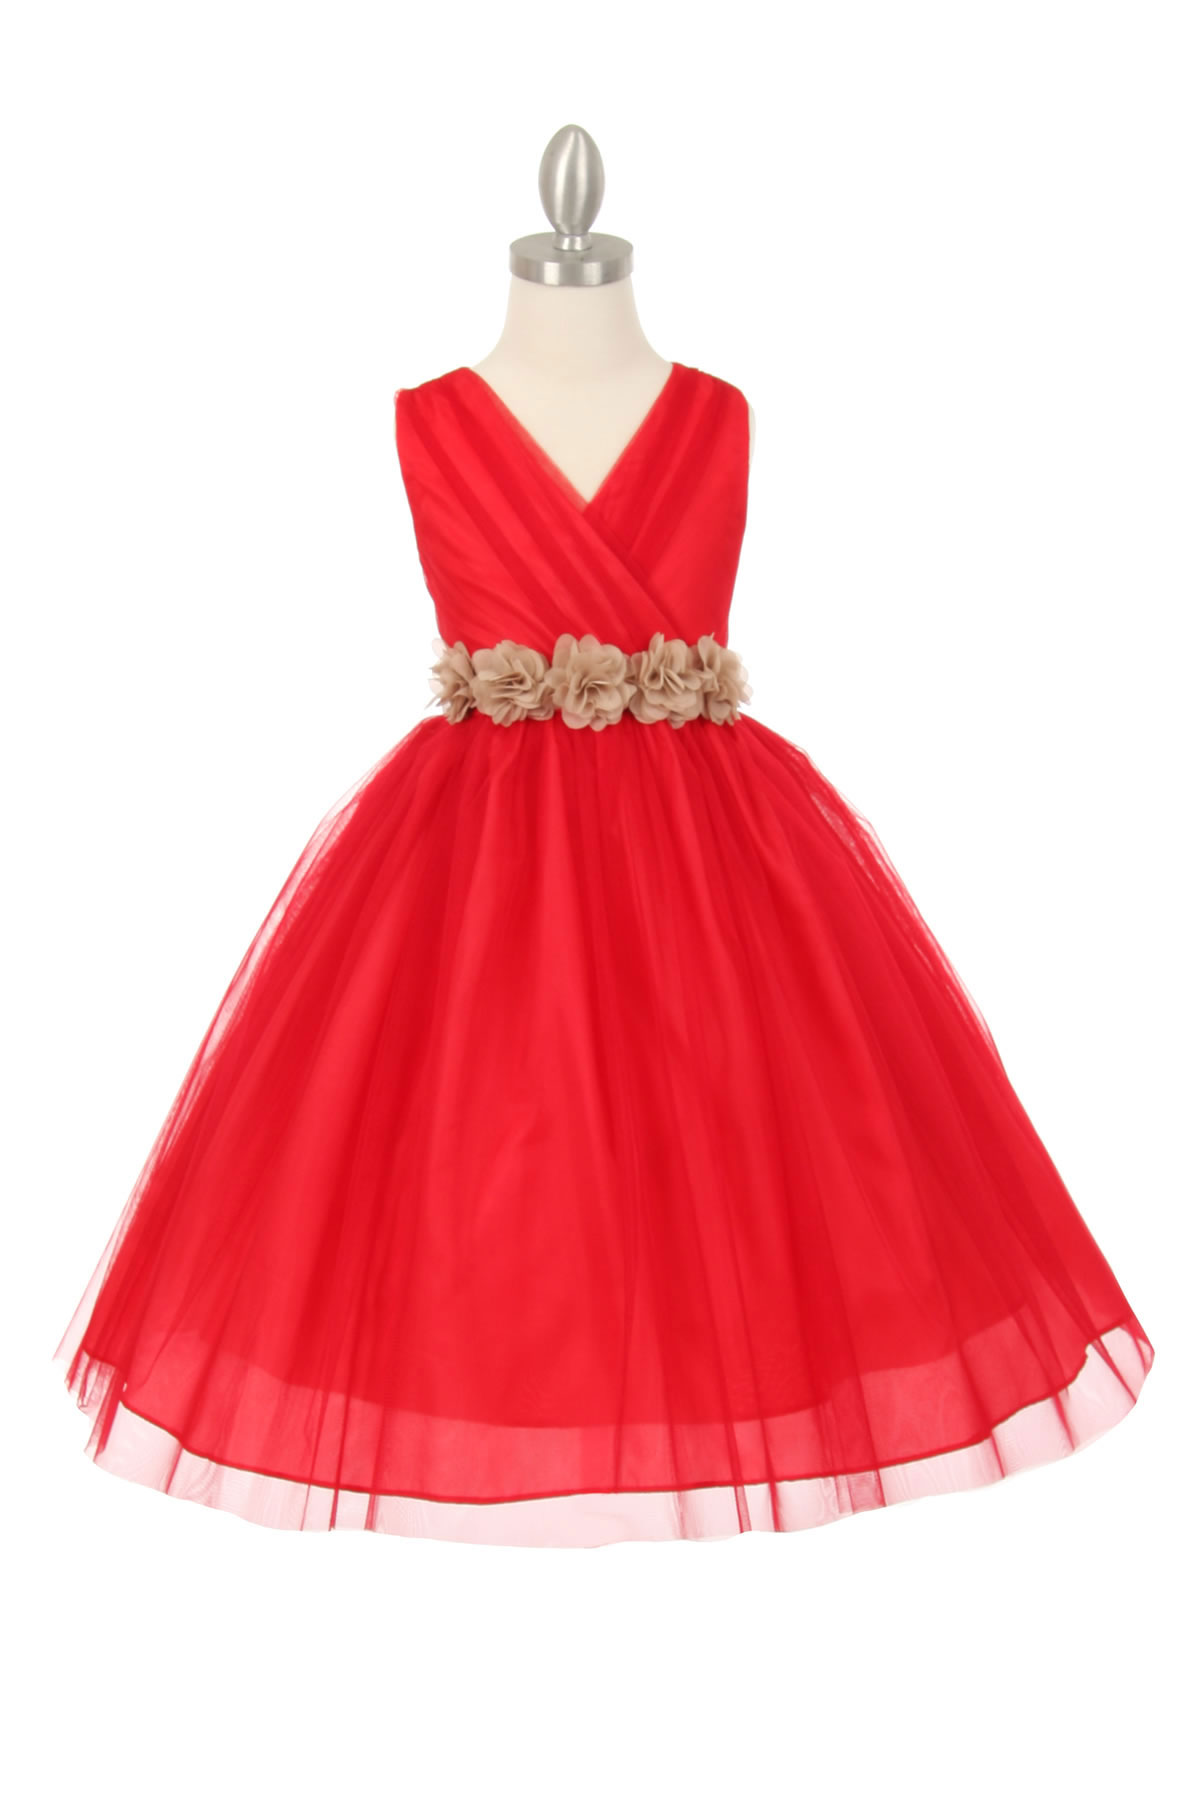 CC 1220RDCH Girls Dress Style 1220 RED Dress with 14